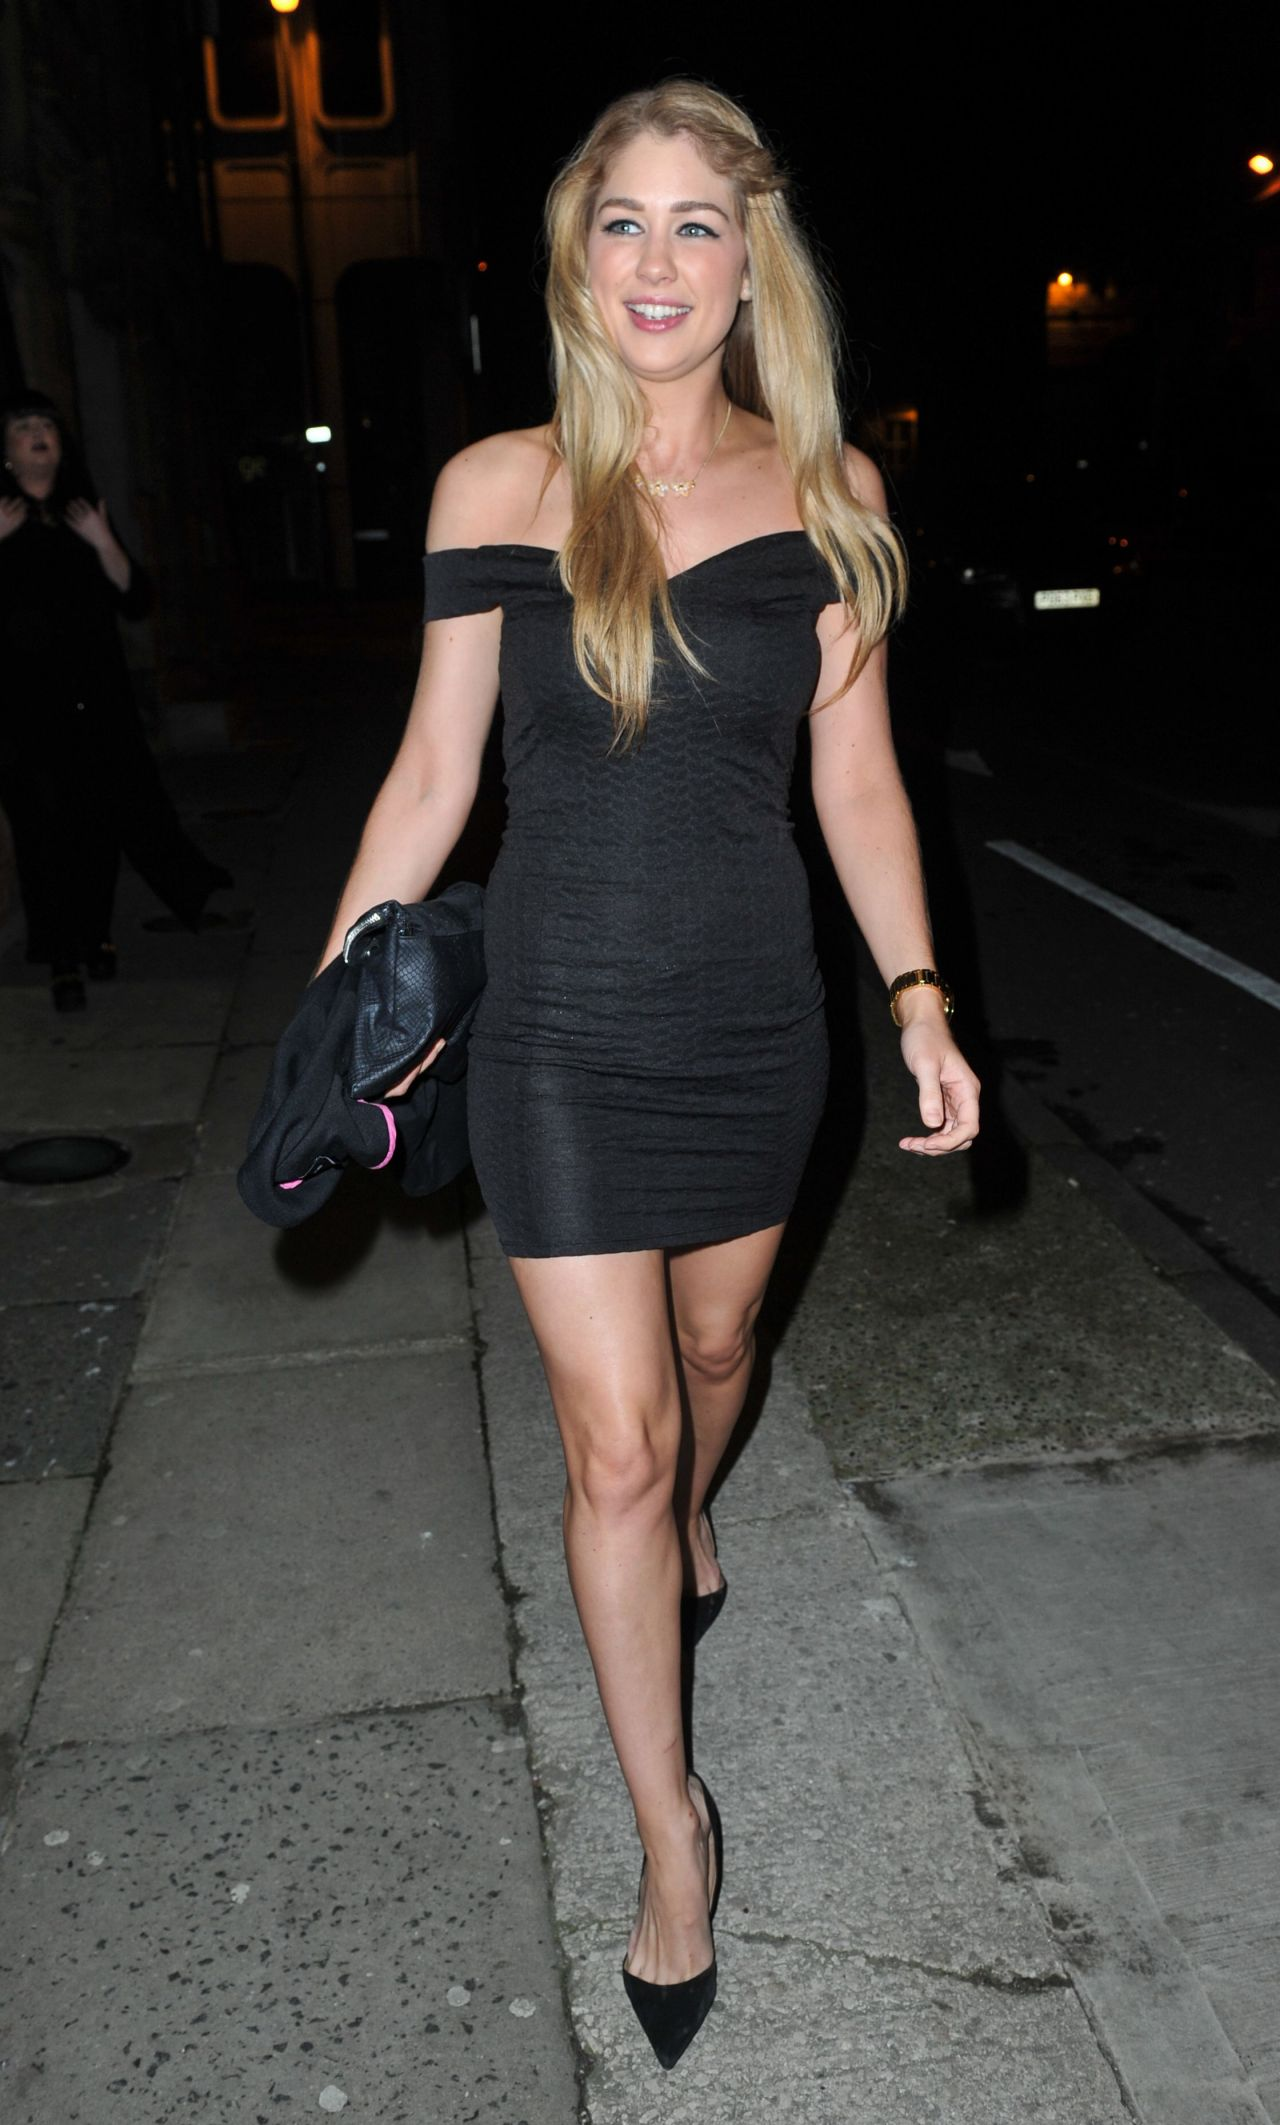 Amanda Clapham Night Out Style -  at The Amanzi Restaurant in Liverpool, Jan. 2015